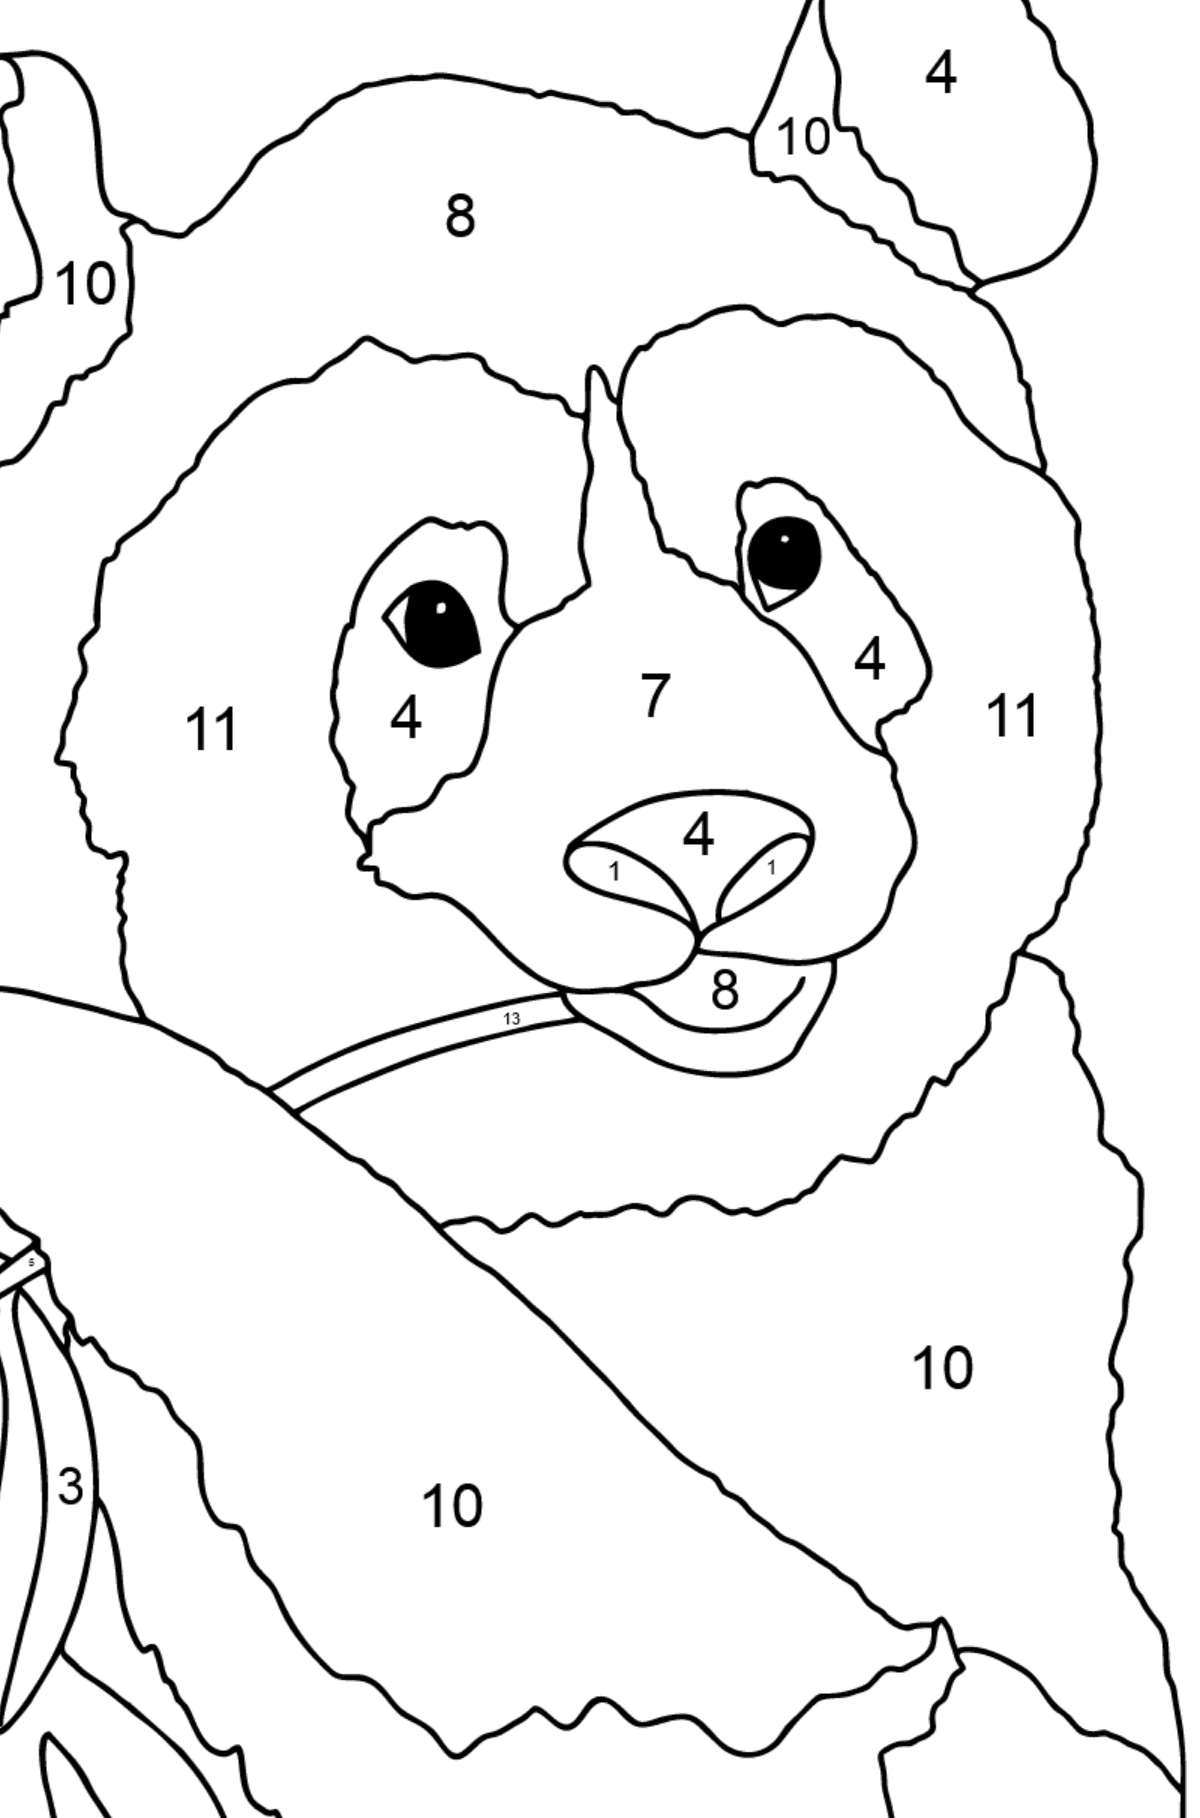 Coloring Page - A Panda is Eating Bamboo Stems and Leaves - Coloring by Numbers for Children